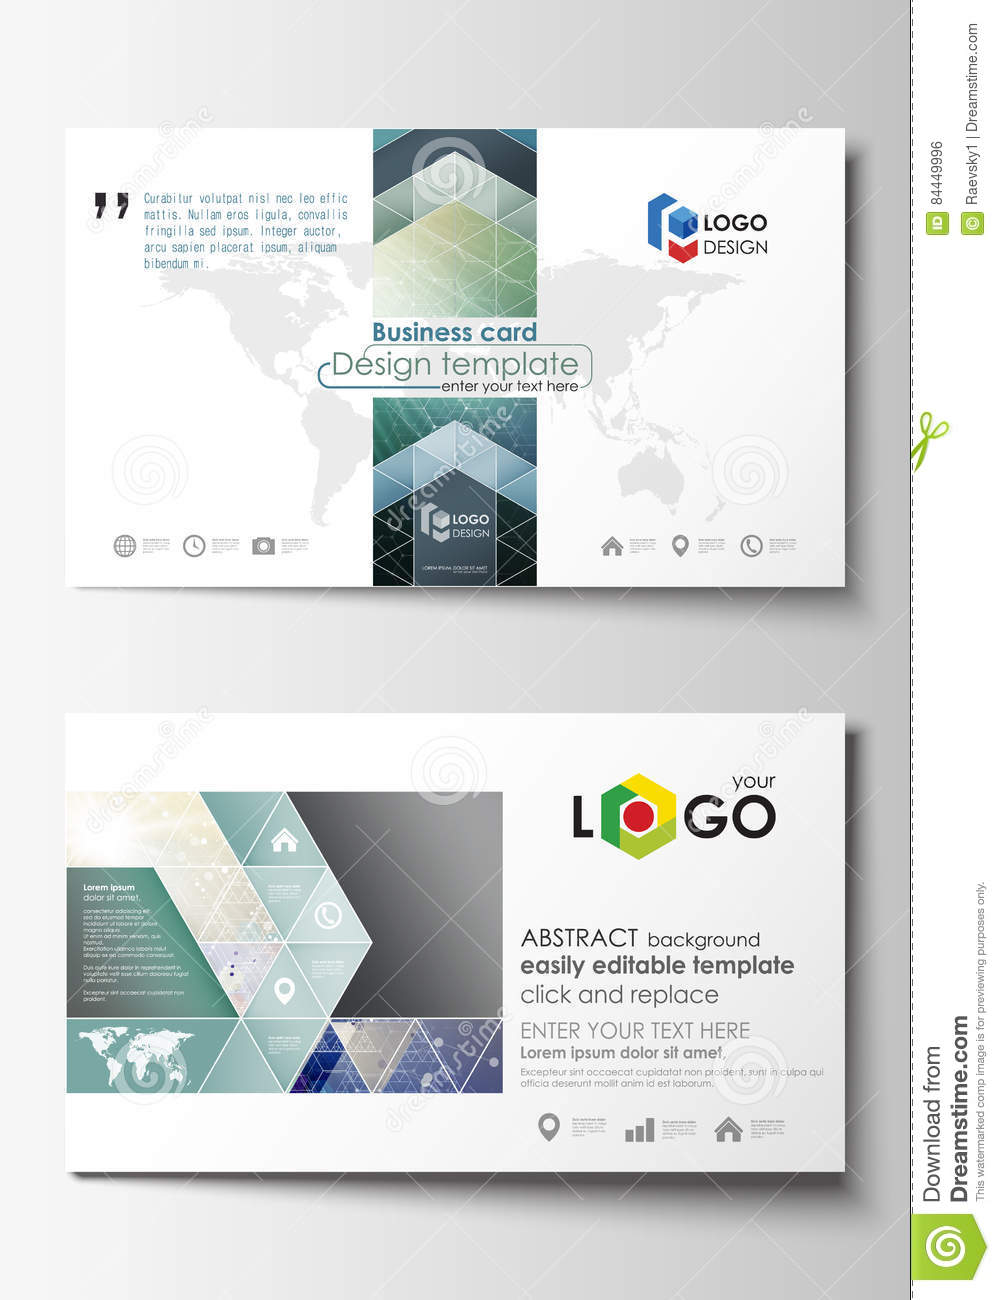 Business card templates easy editable layout abstract flat design download comp accmission Choice Image